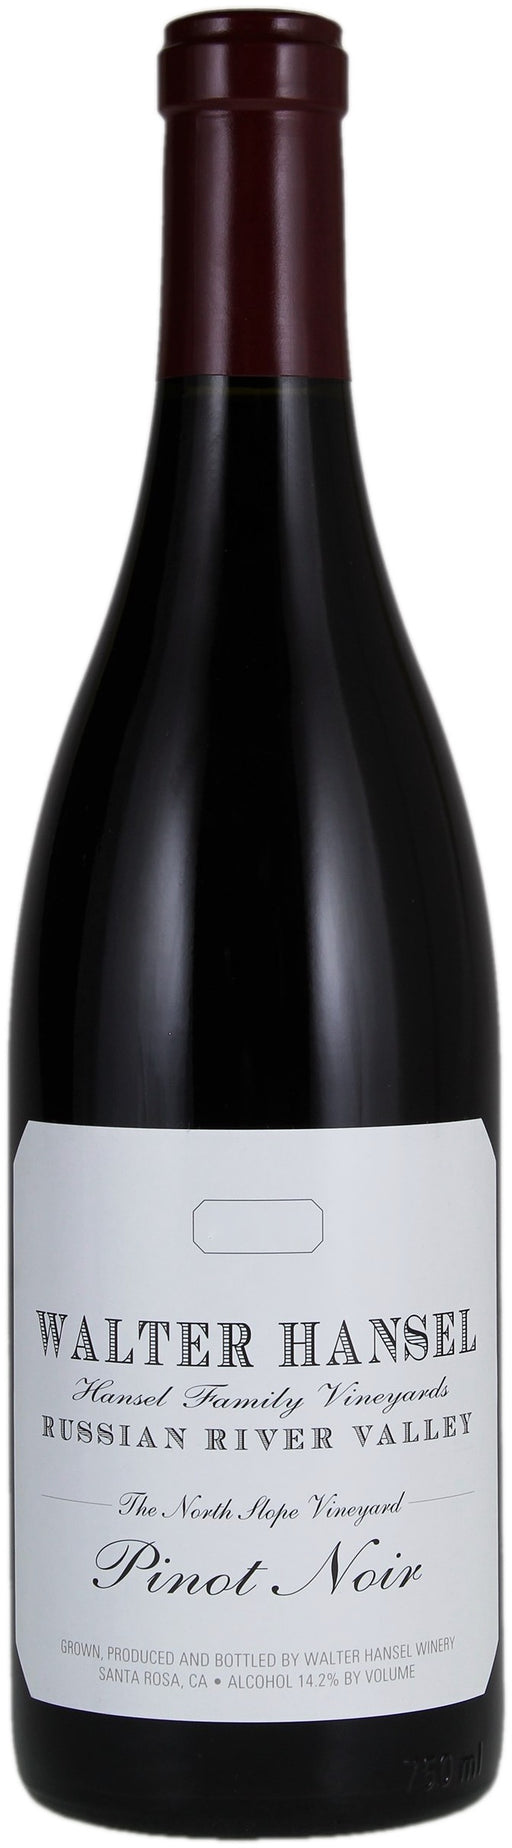 Walter Hansel North Slope Russian River Valley Pinot Noir 2018